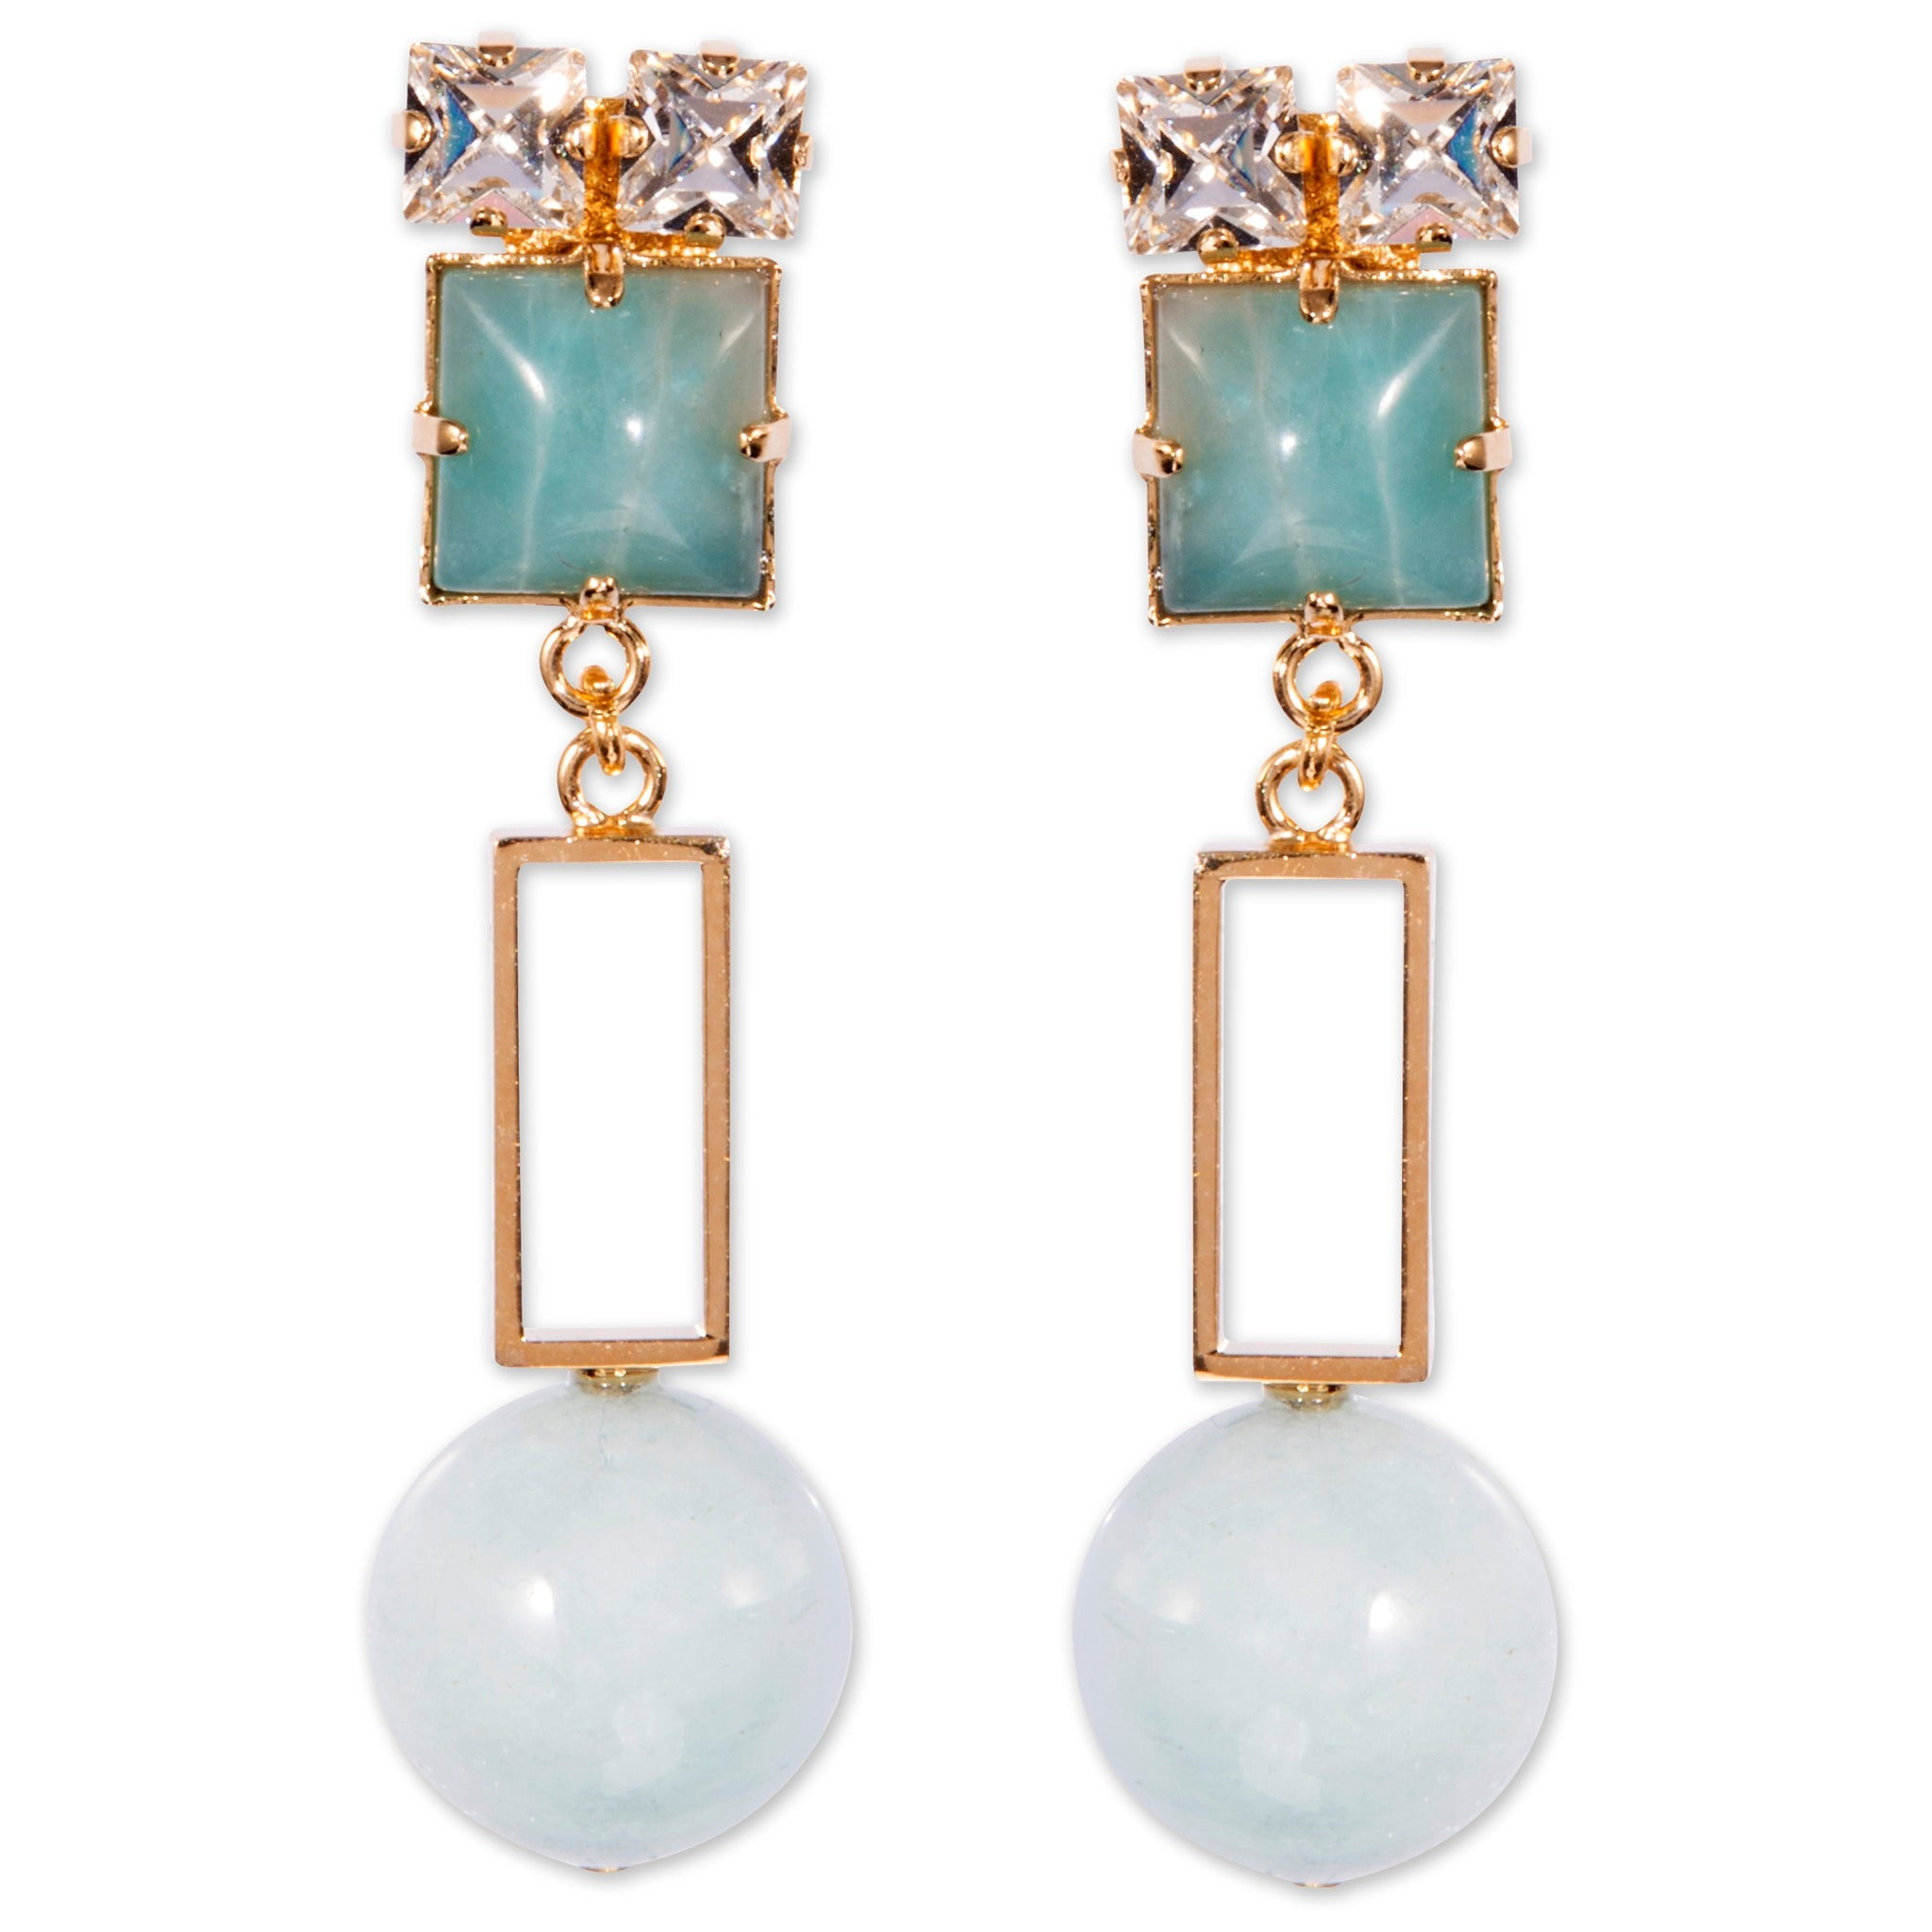 Earrings with amazonite, aquamarine and crystals for pierced ears